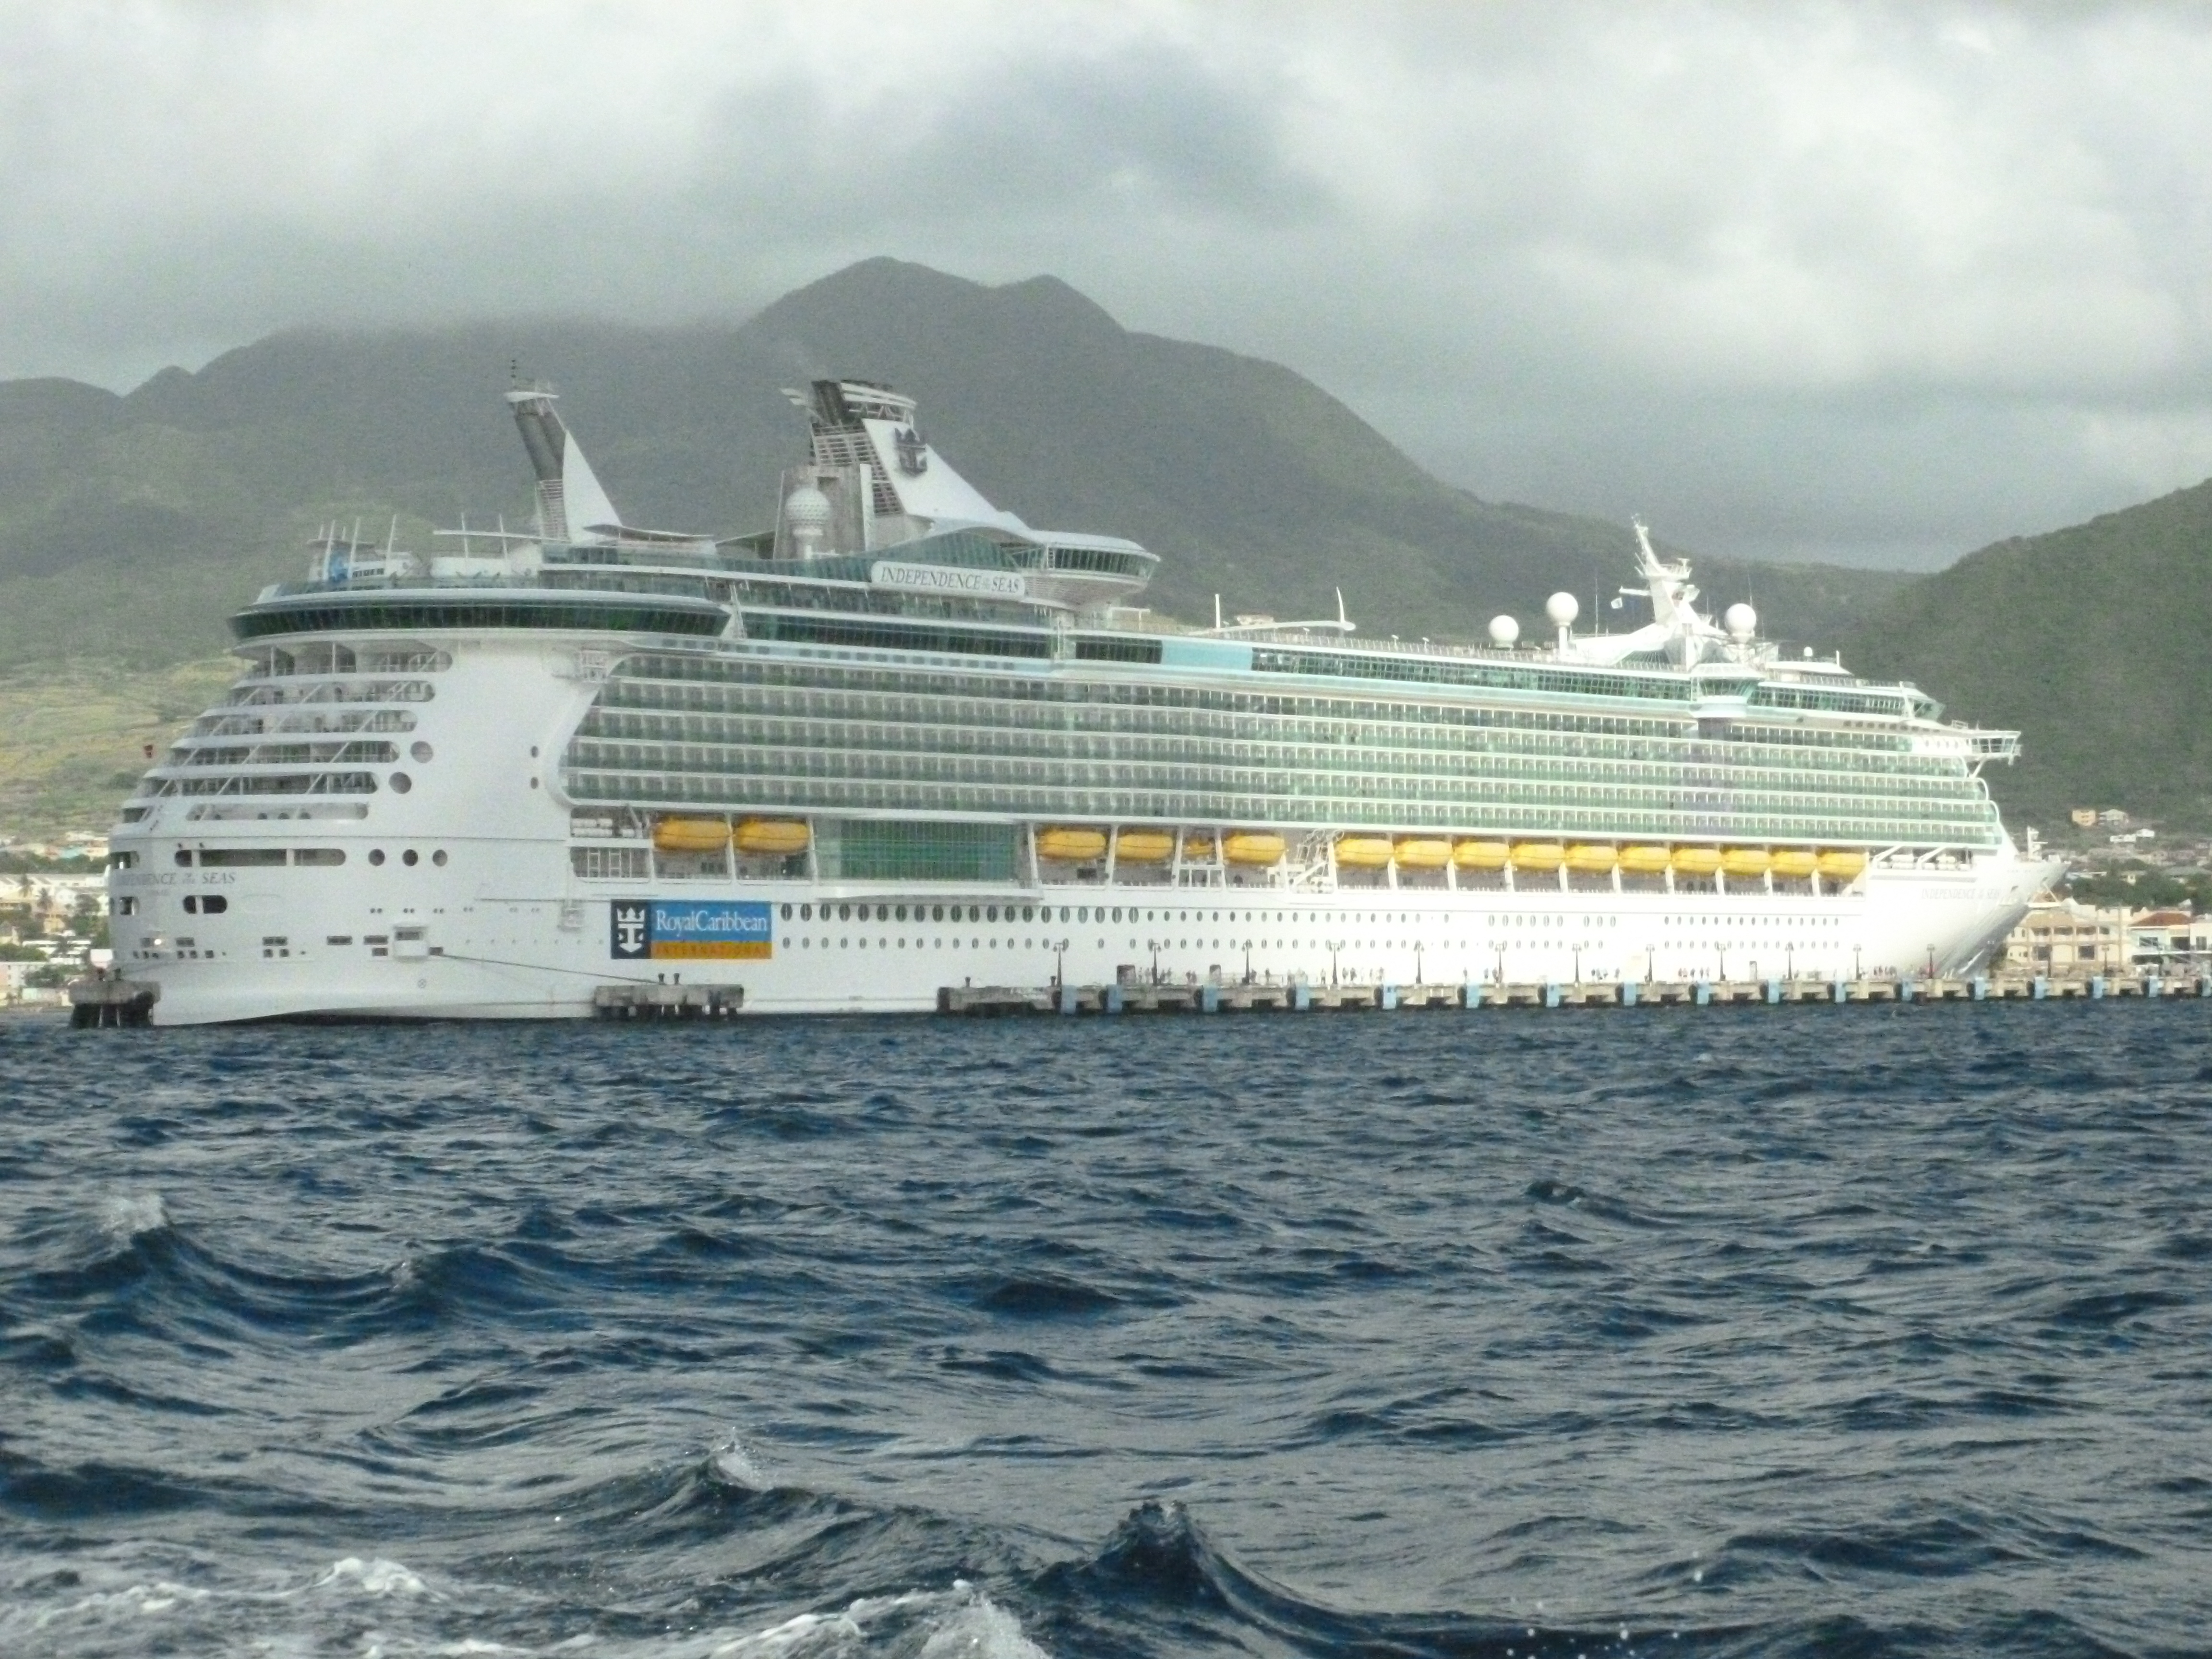 BIG SHIPIndependence Of The Seas Tom Baker Cruises Blog - Cruise ship independence